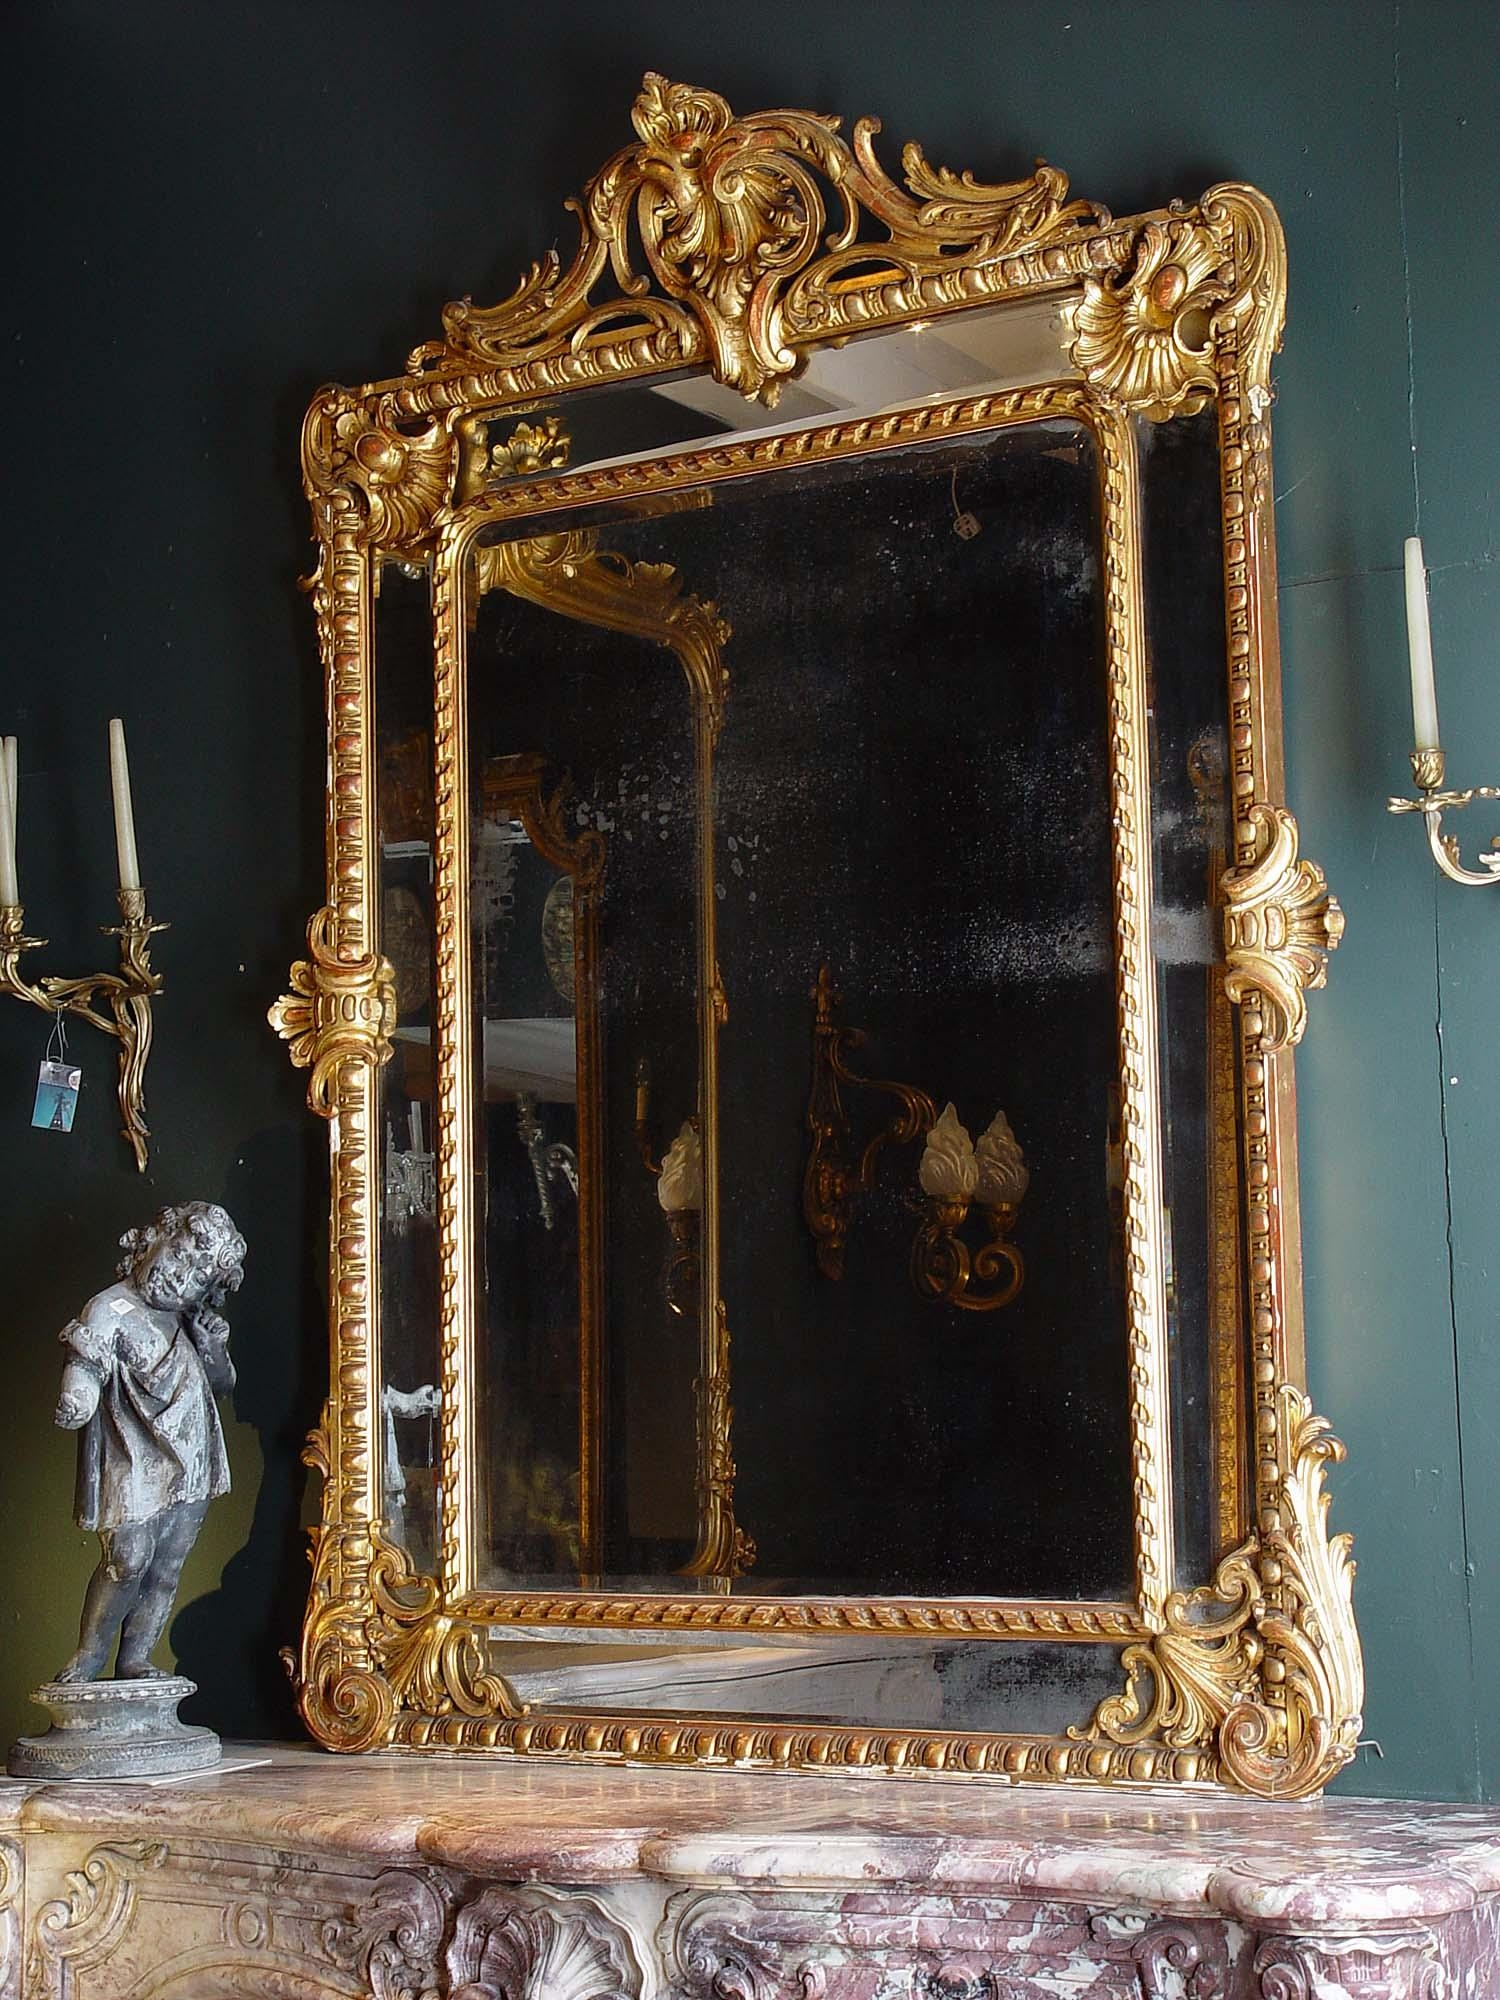 Big Mirrors For Sale 103 Trendy Interior Or Large Gold Very Ornate Pertaining To Antique Mirror For Sale (View 15 of 20)